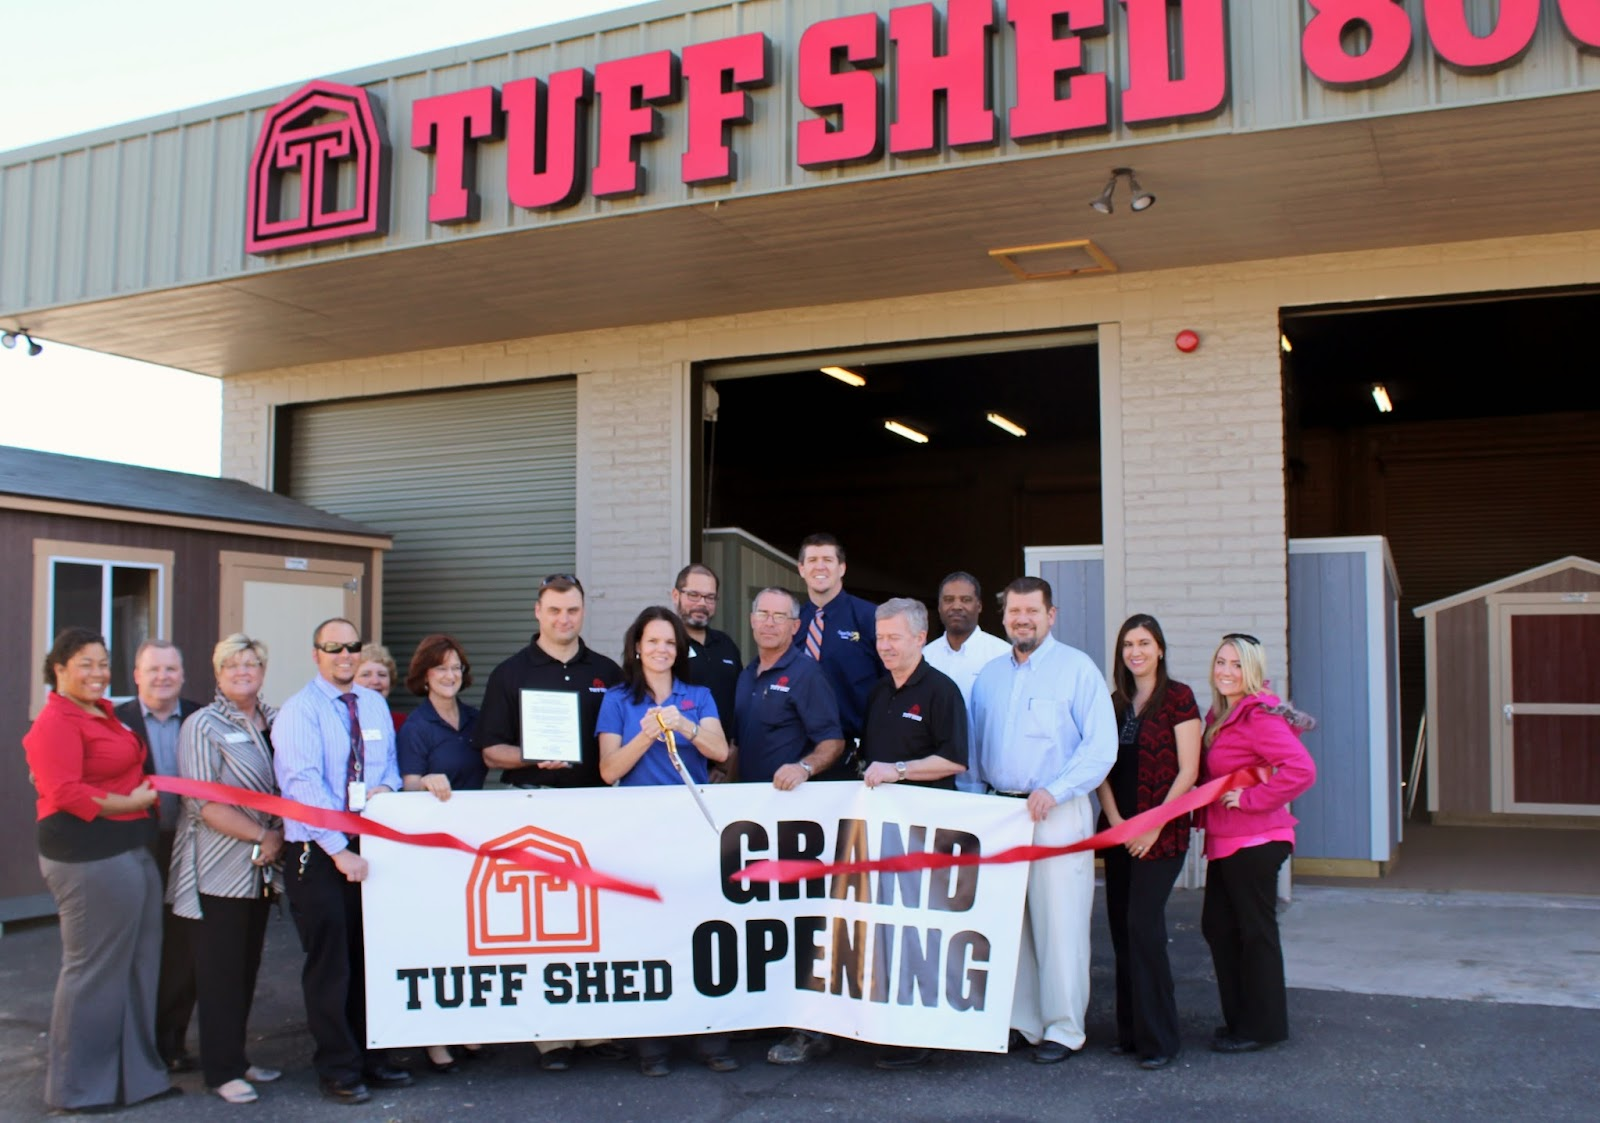 """""""At Tuff Shed, our mission is to be the premier provider of storage buildings and garages, creating products of lasting value for our customers. Come and check out our incredible selection of affordable, high quality sheds, garages and cabins.""""  Tuff Shed 3502 N. Oracle Road Tucson, AZ 85705 (520) 289-3936"""